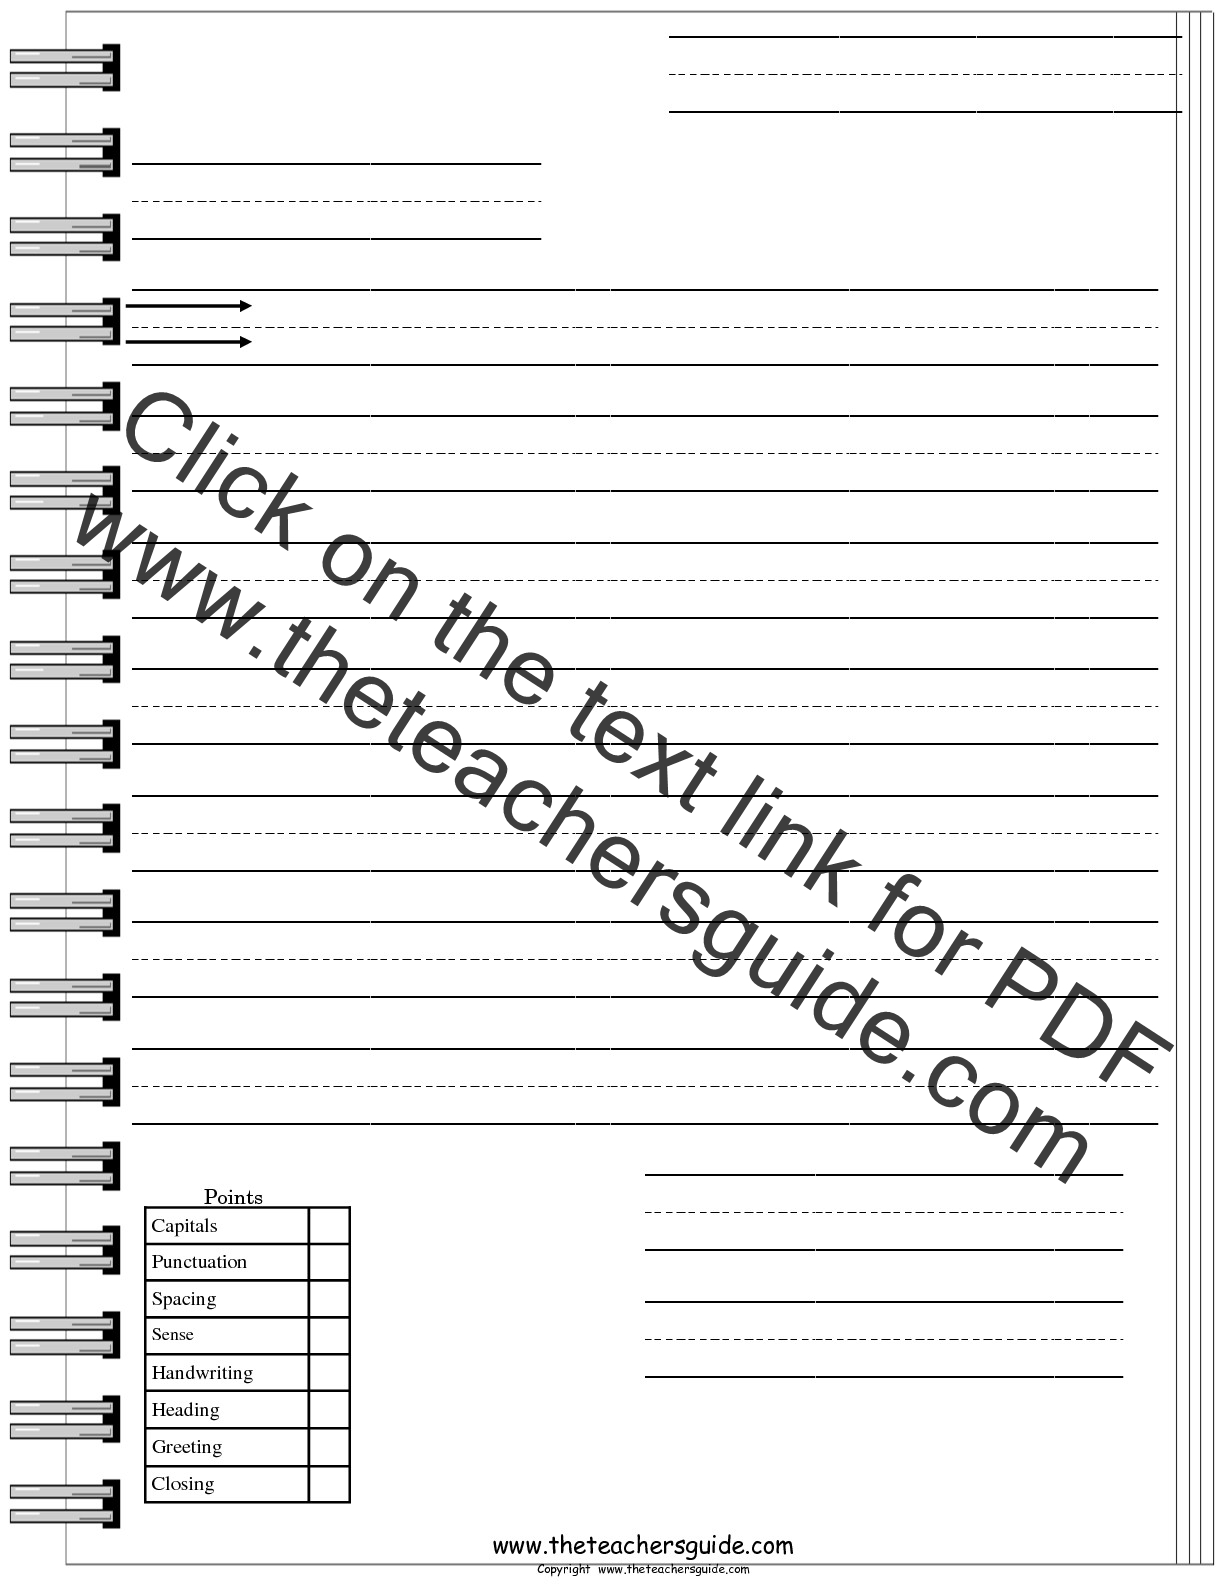 letter writing templates free Printable worksheets to teach writing - paragraph writing, letter writing, peer editing checklists, figures of speech, and lots more.